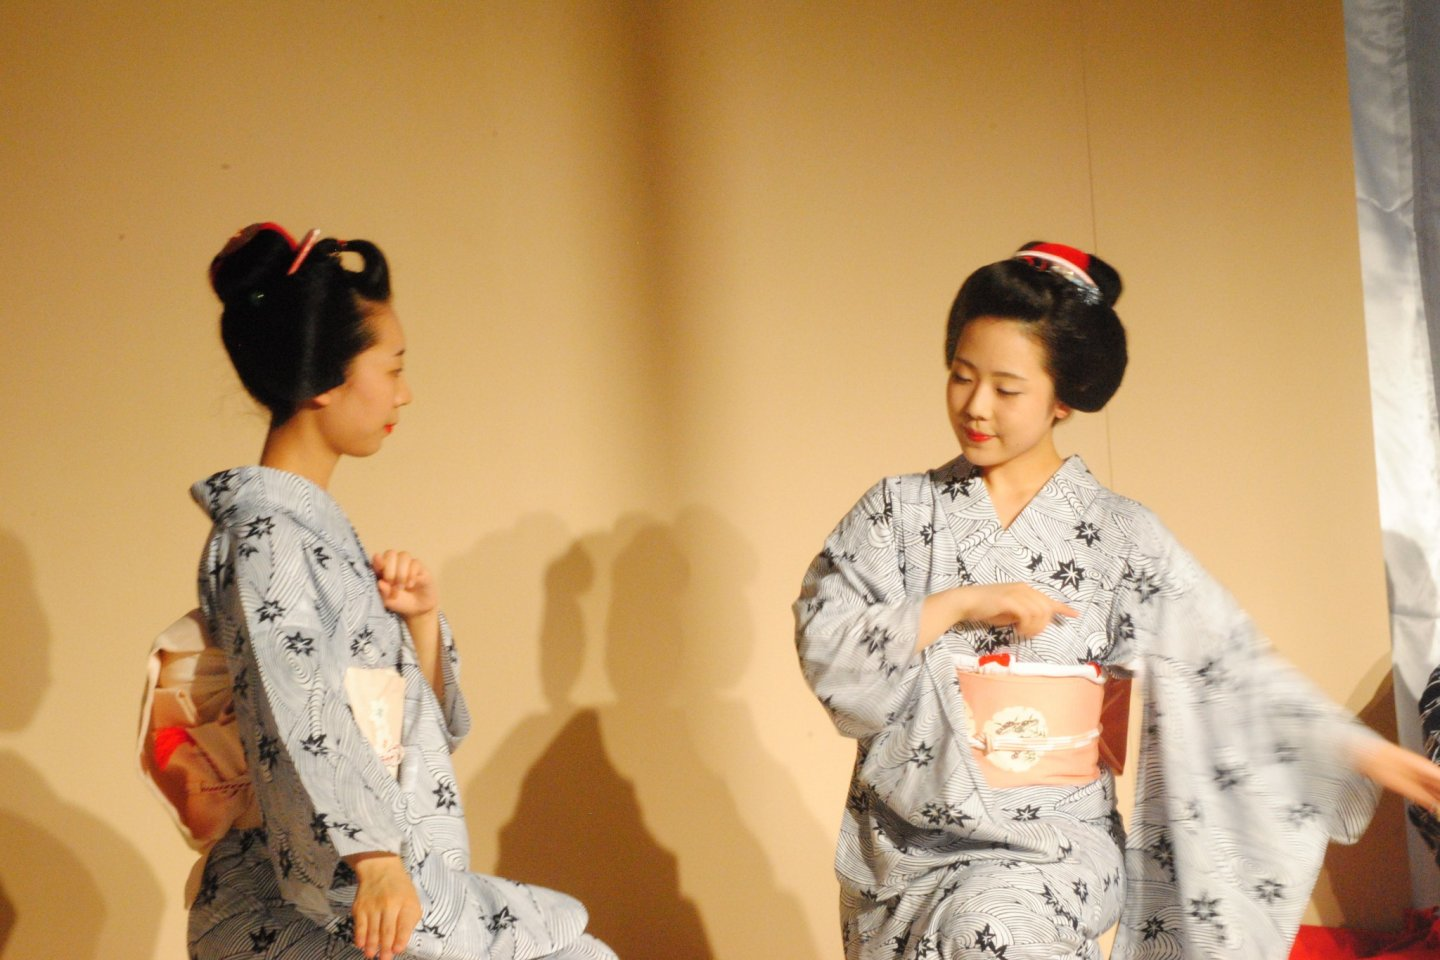 Dance by Maiko